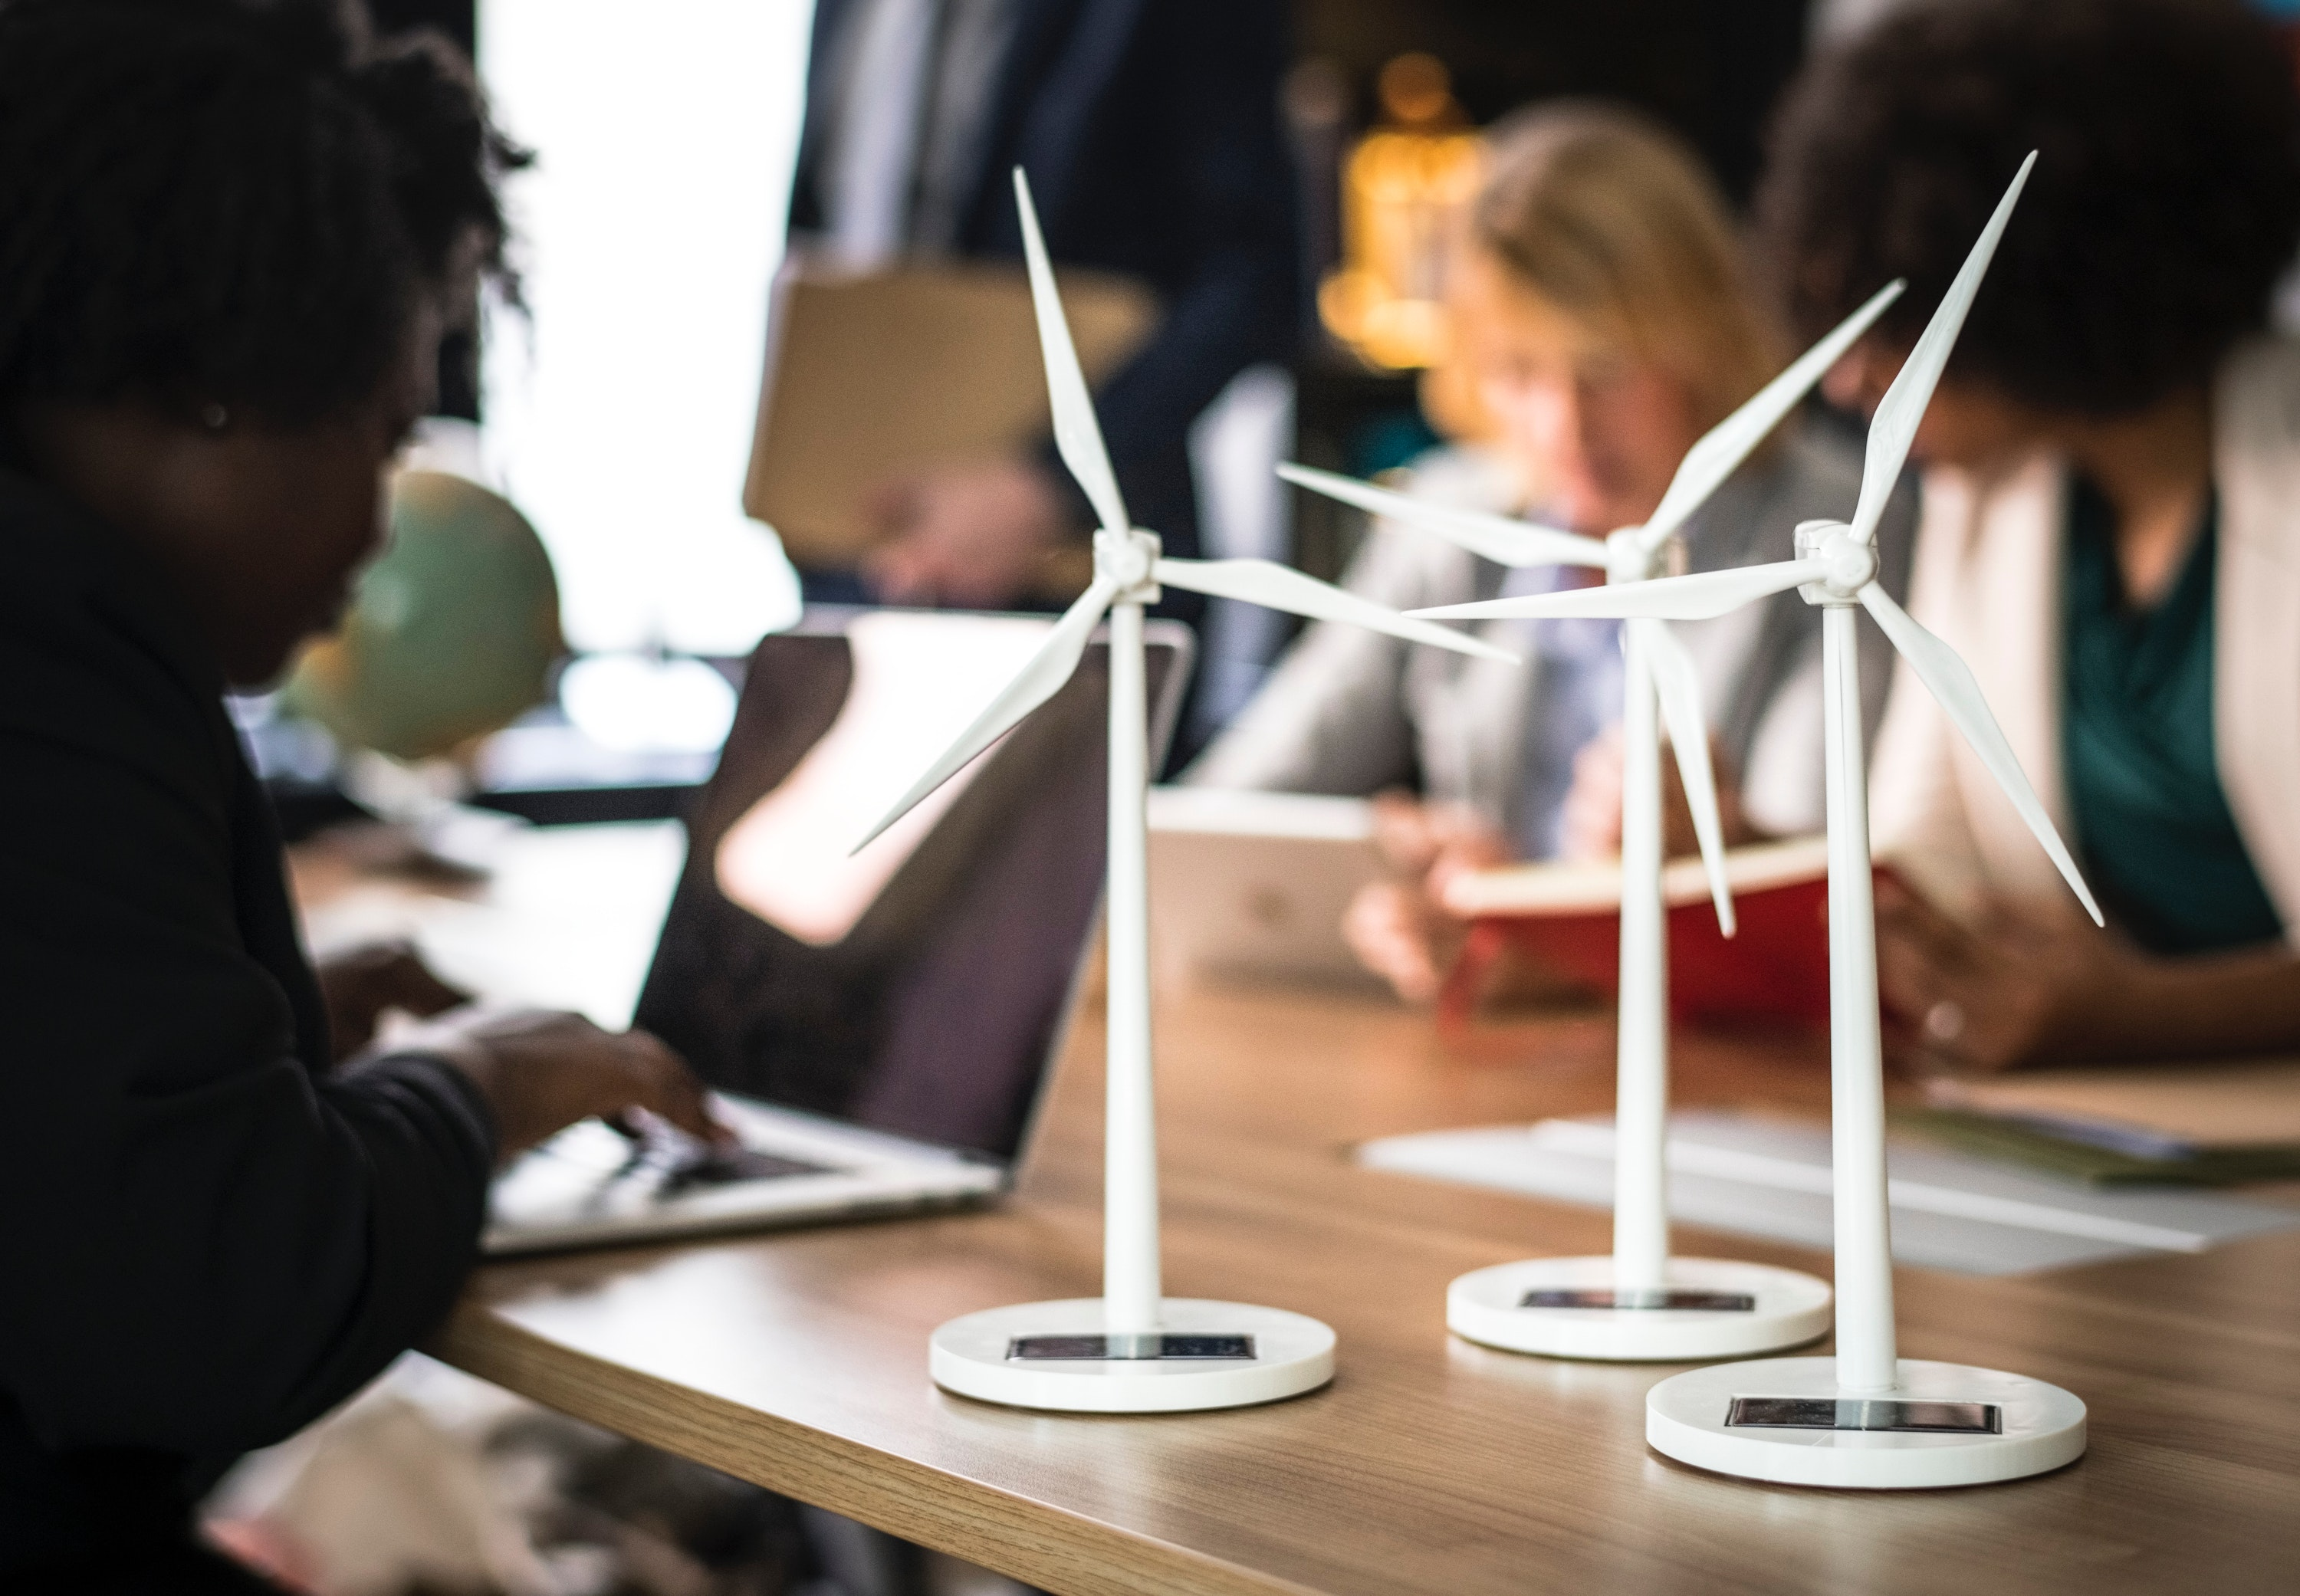 Wind turbines in the office rawpixel.com via Pexels